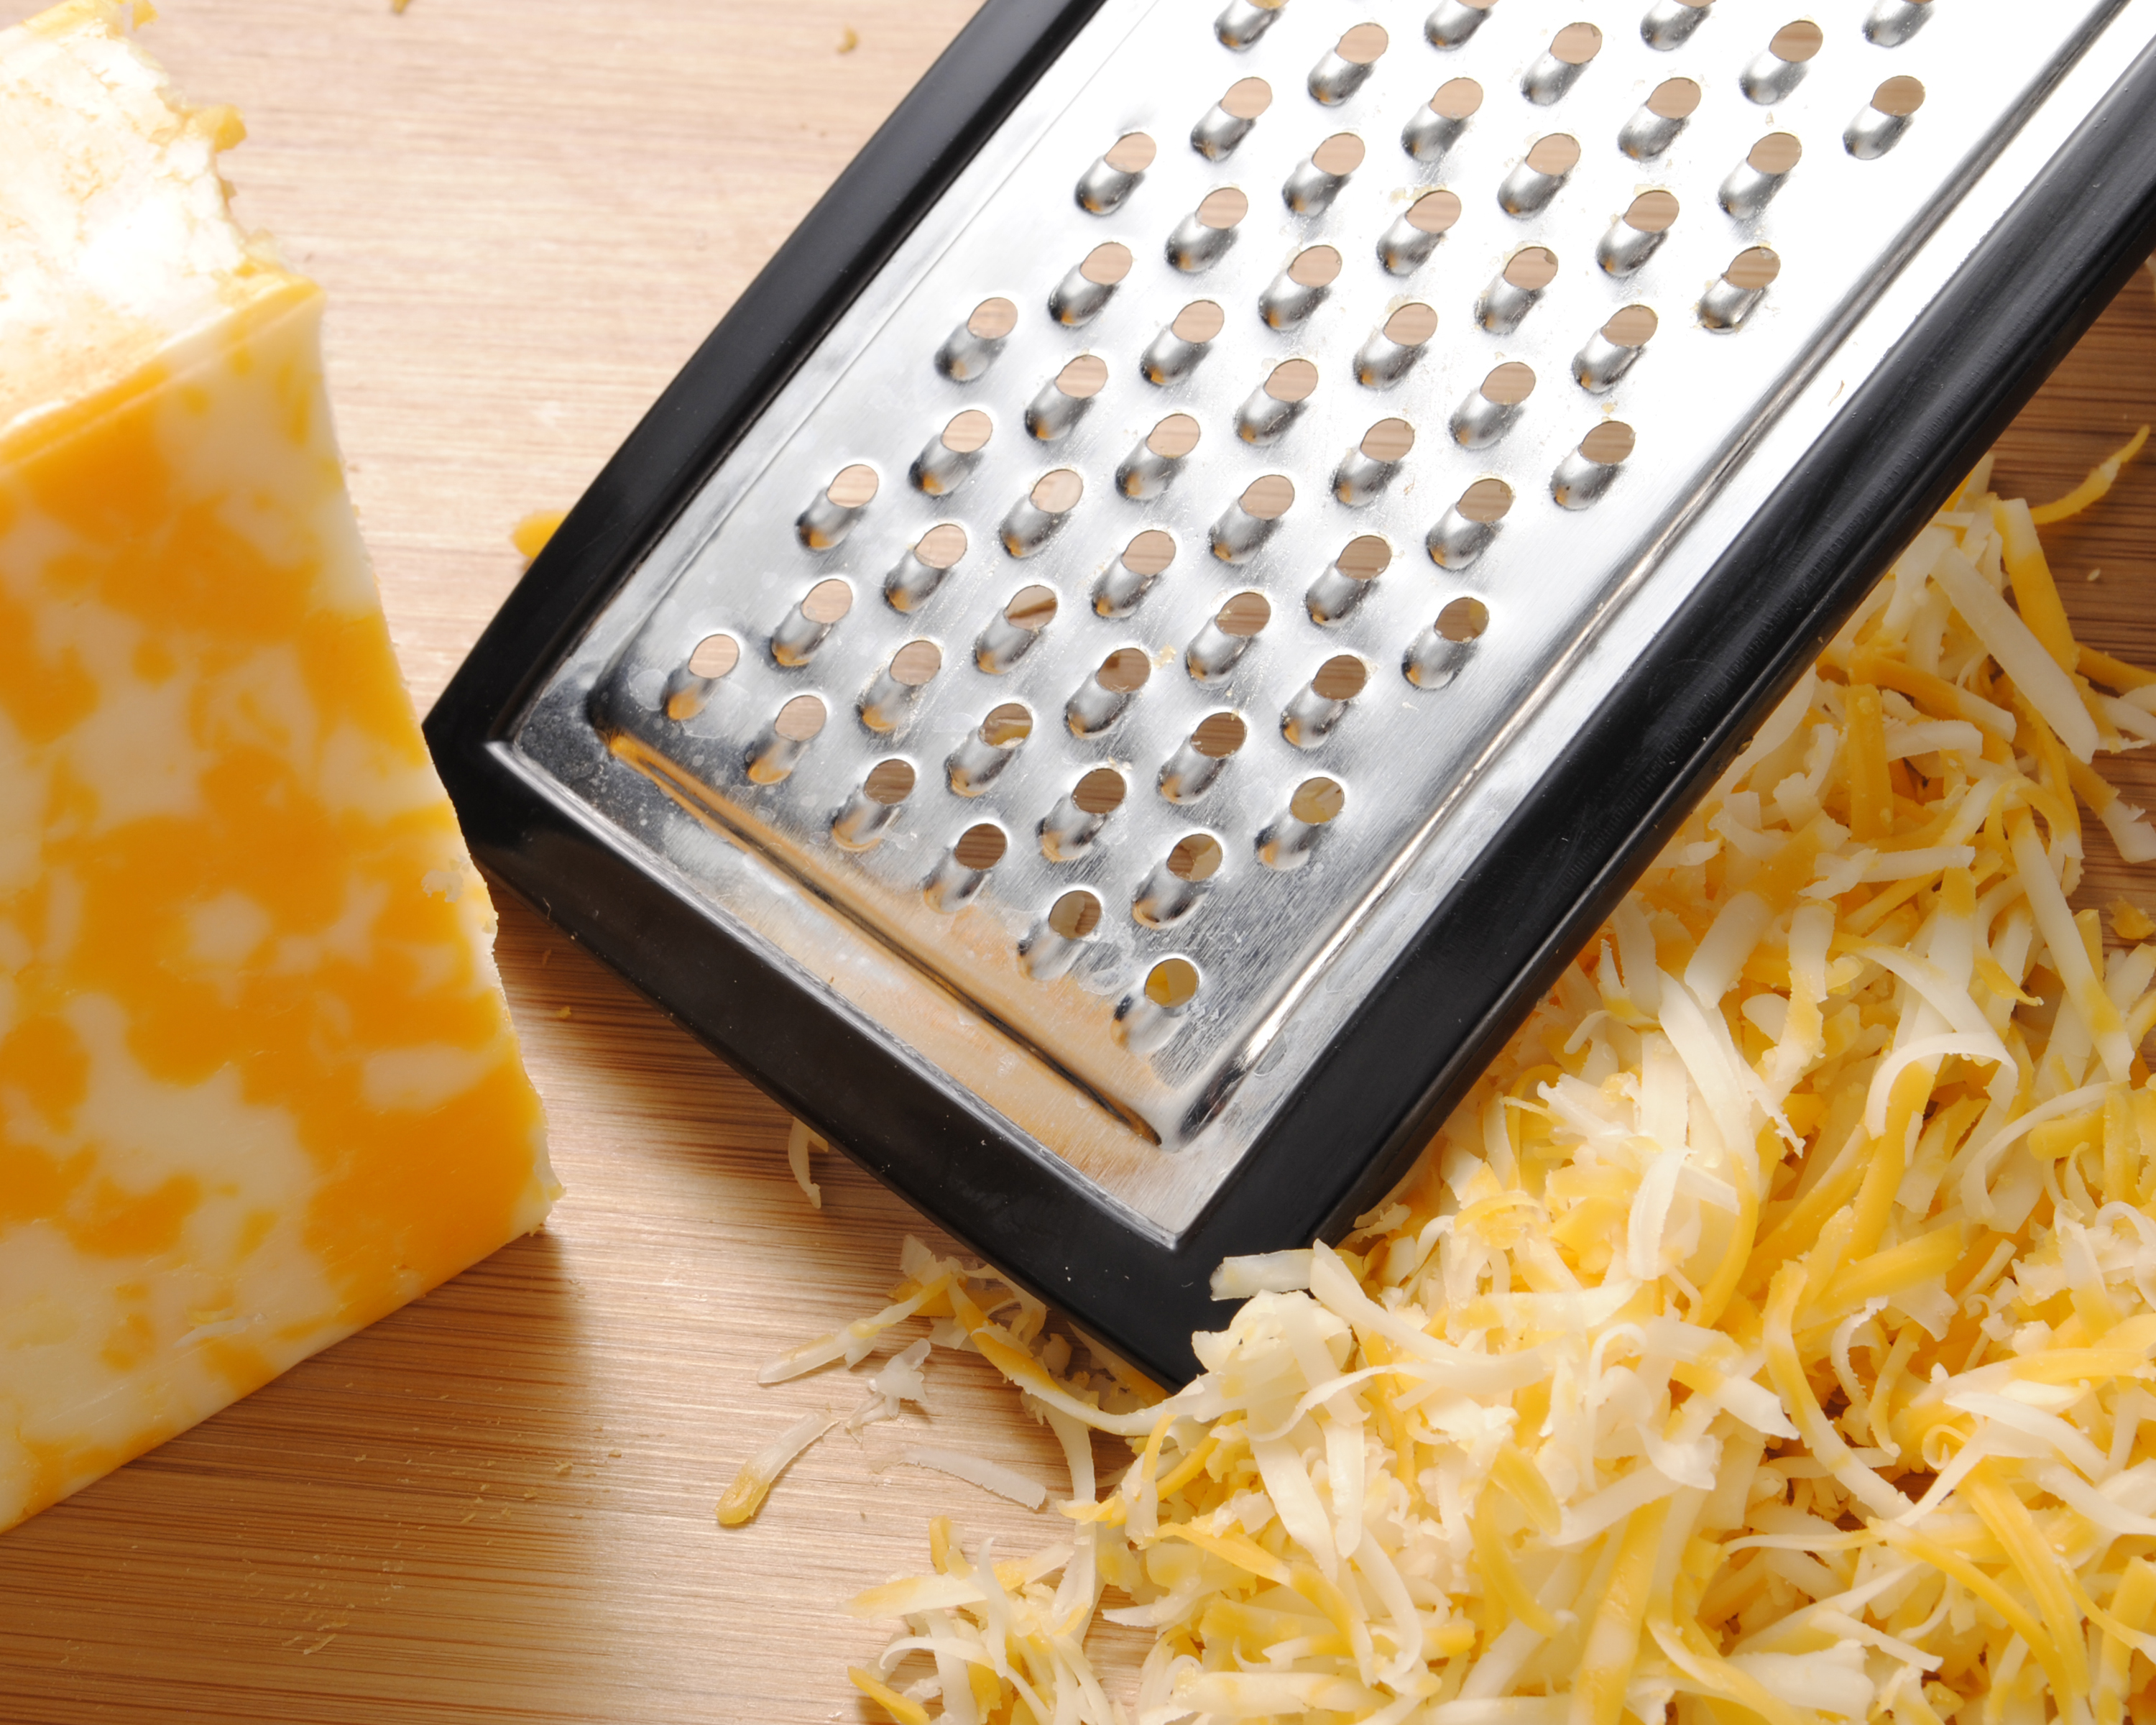 how to grate cheese without a grater